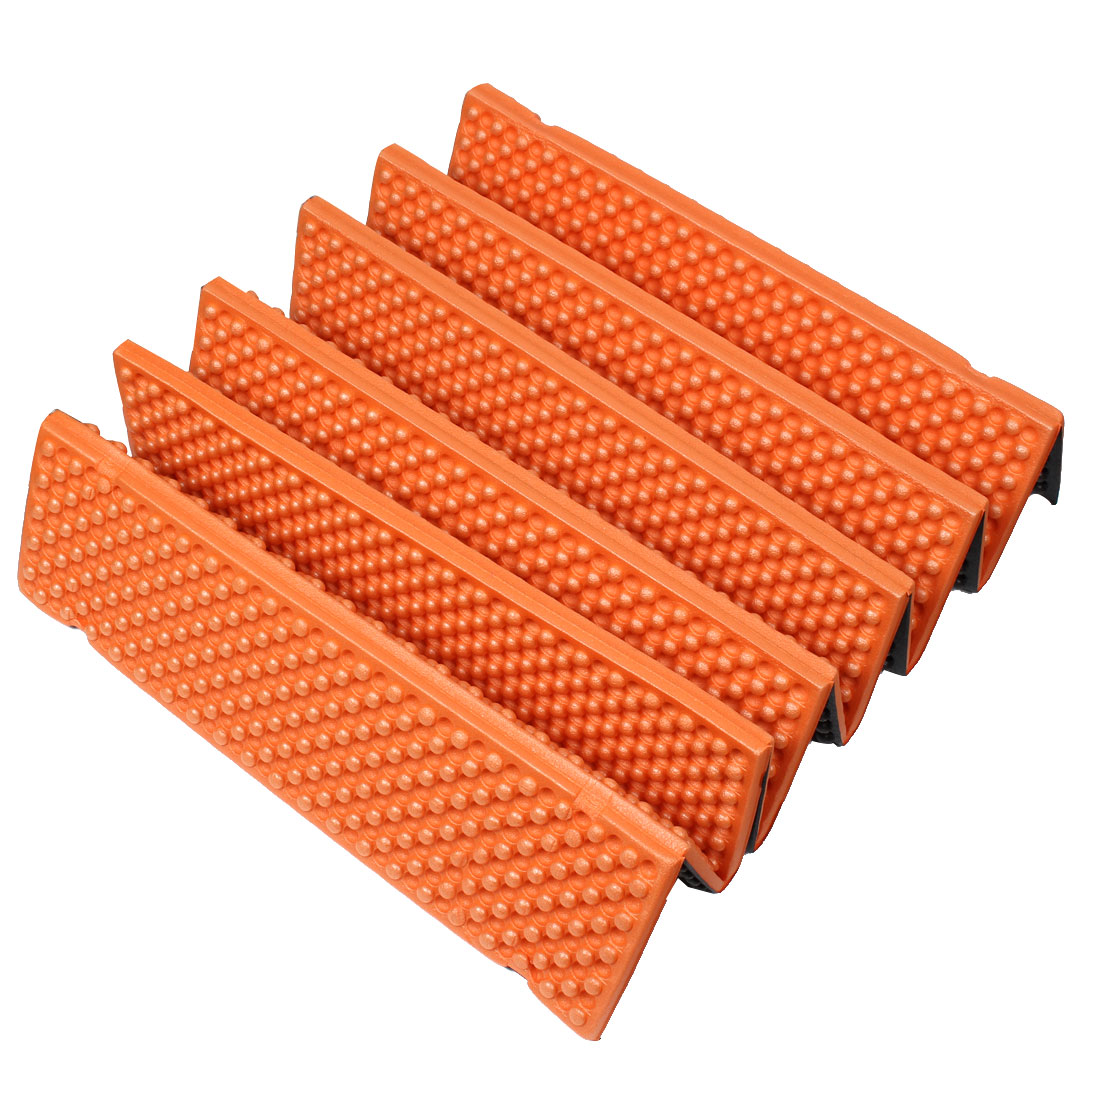 Outdoor Hiking Mountaineering Camping Picnic Dampproof Tent Foldable Mat Sleeping Foam Pad Orange